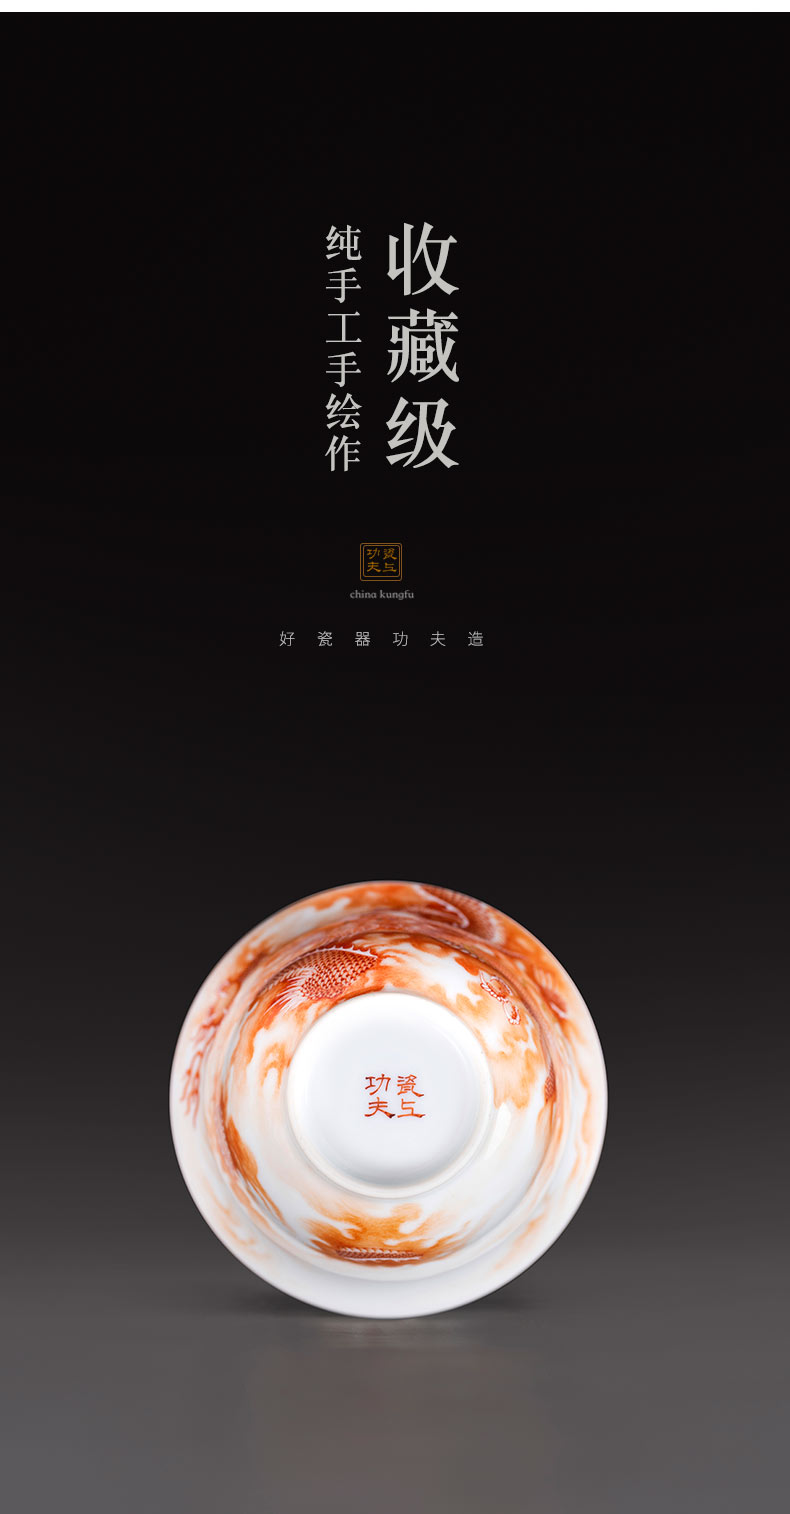 Porcelain on kung fu alum red dragon tureen jingdezhen ceramics by hand only two kung fu tea tea bowl of tea cups